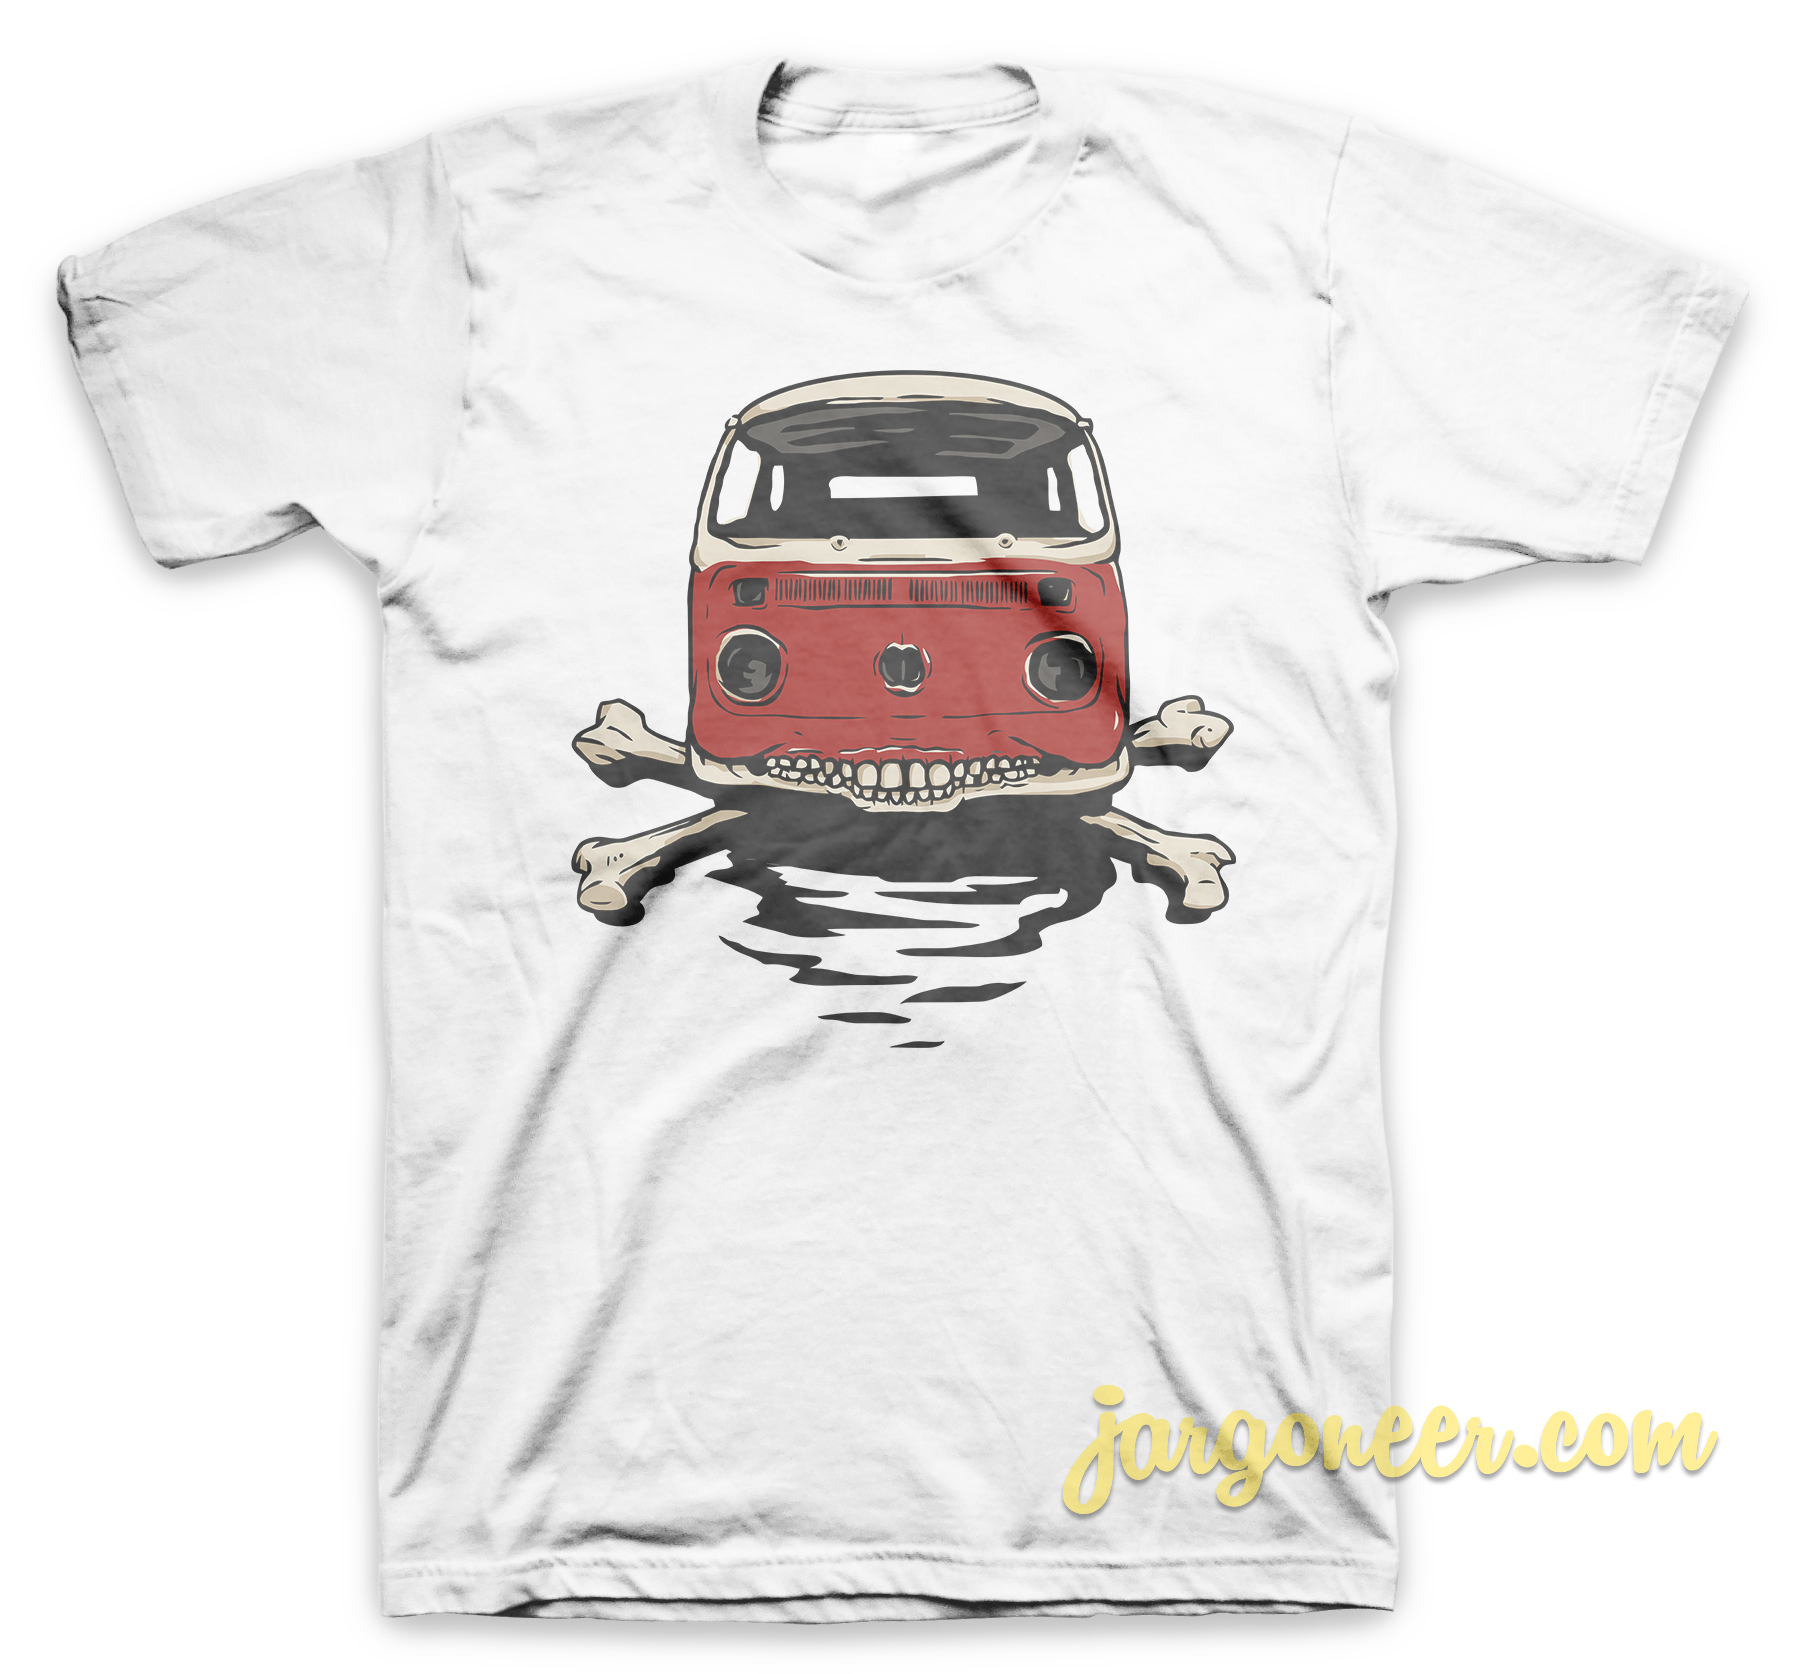 Deadly Bus T-Shirt